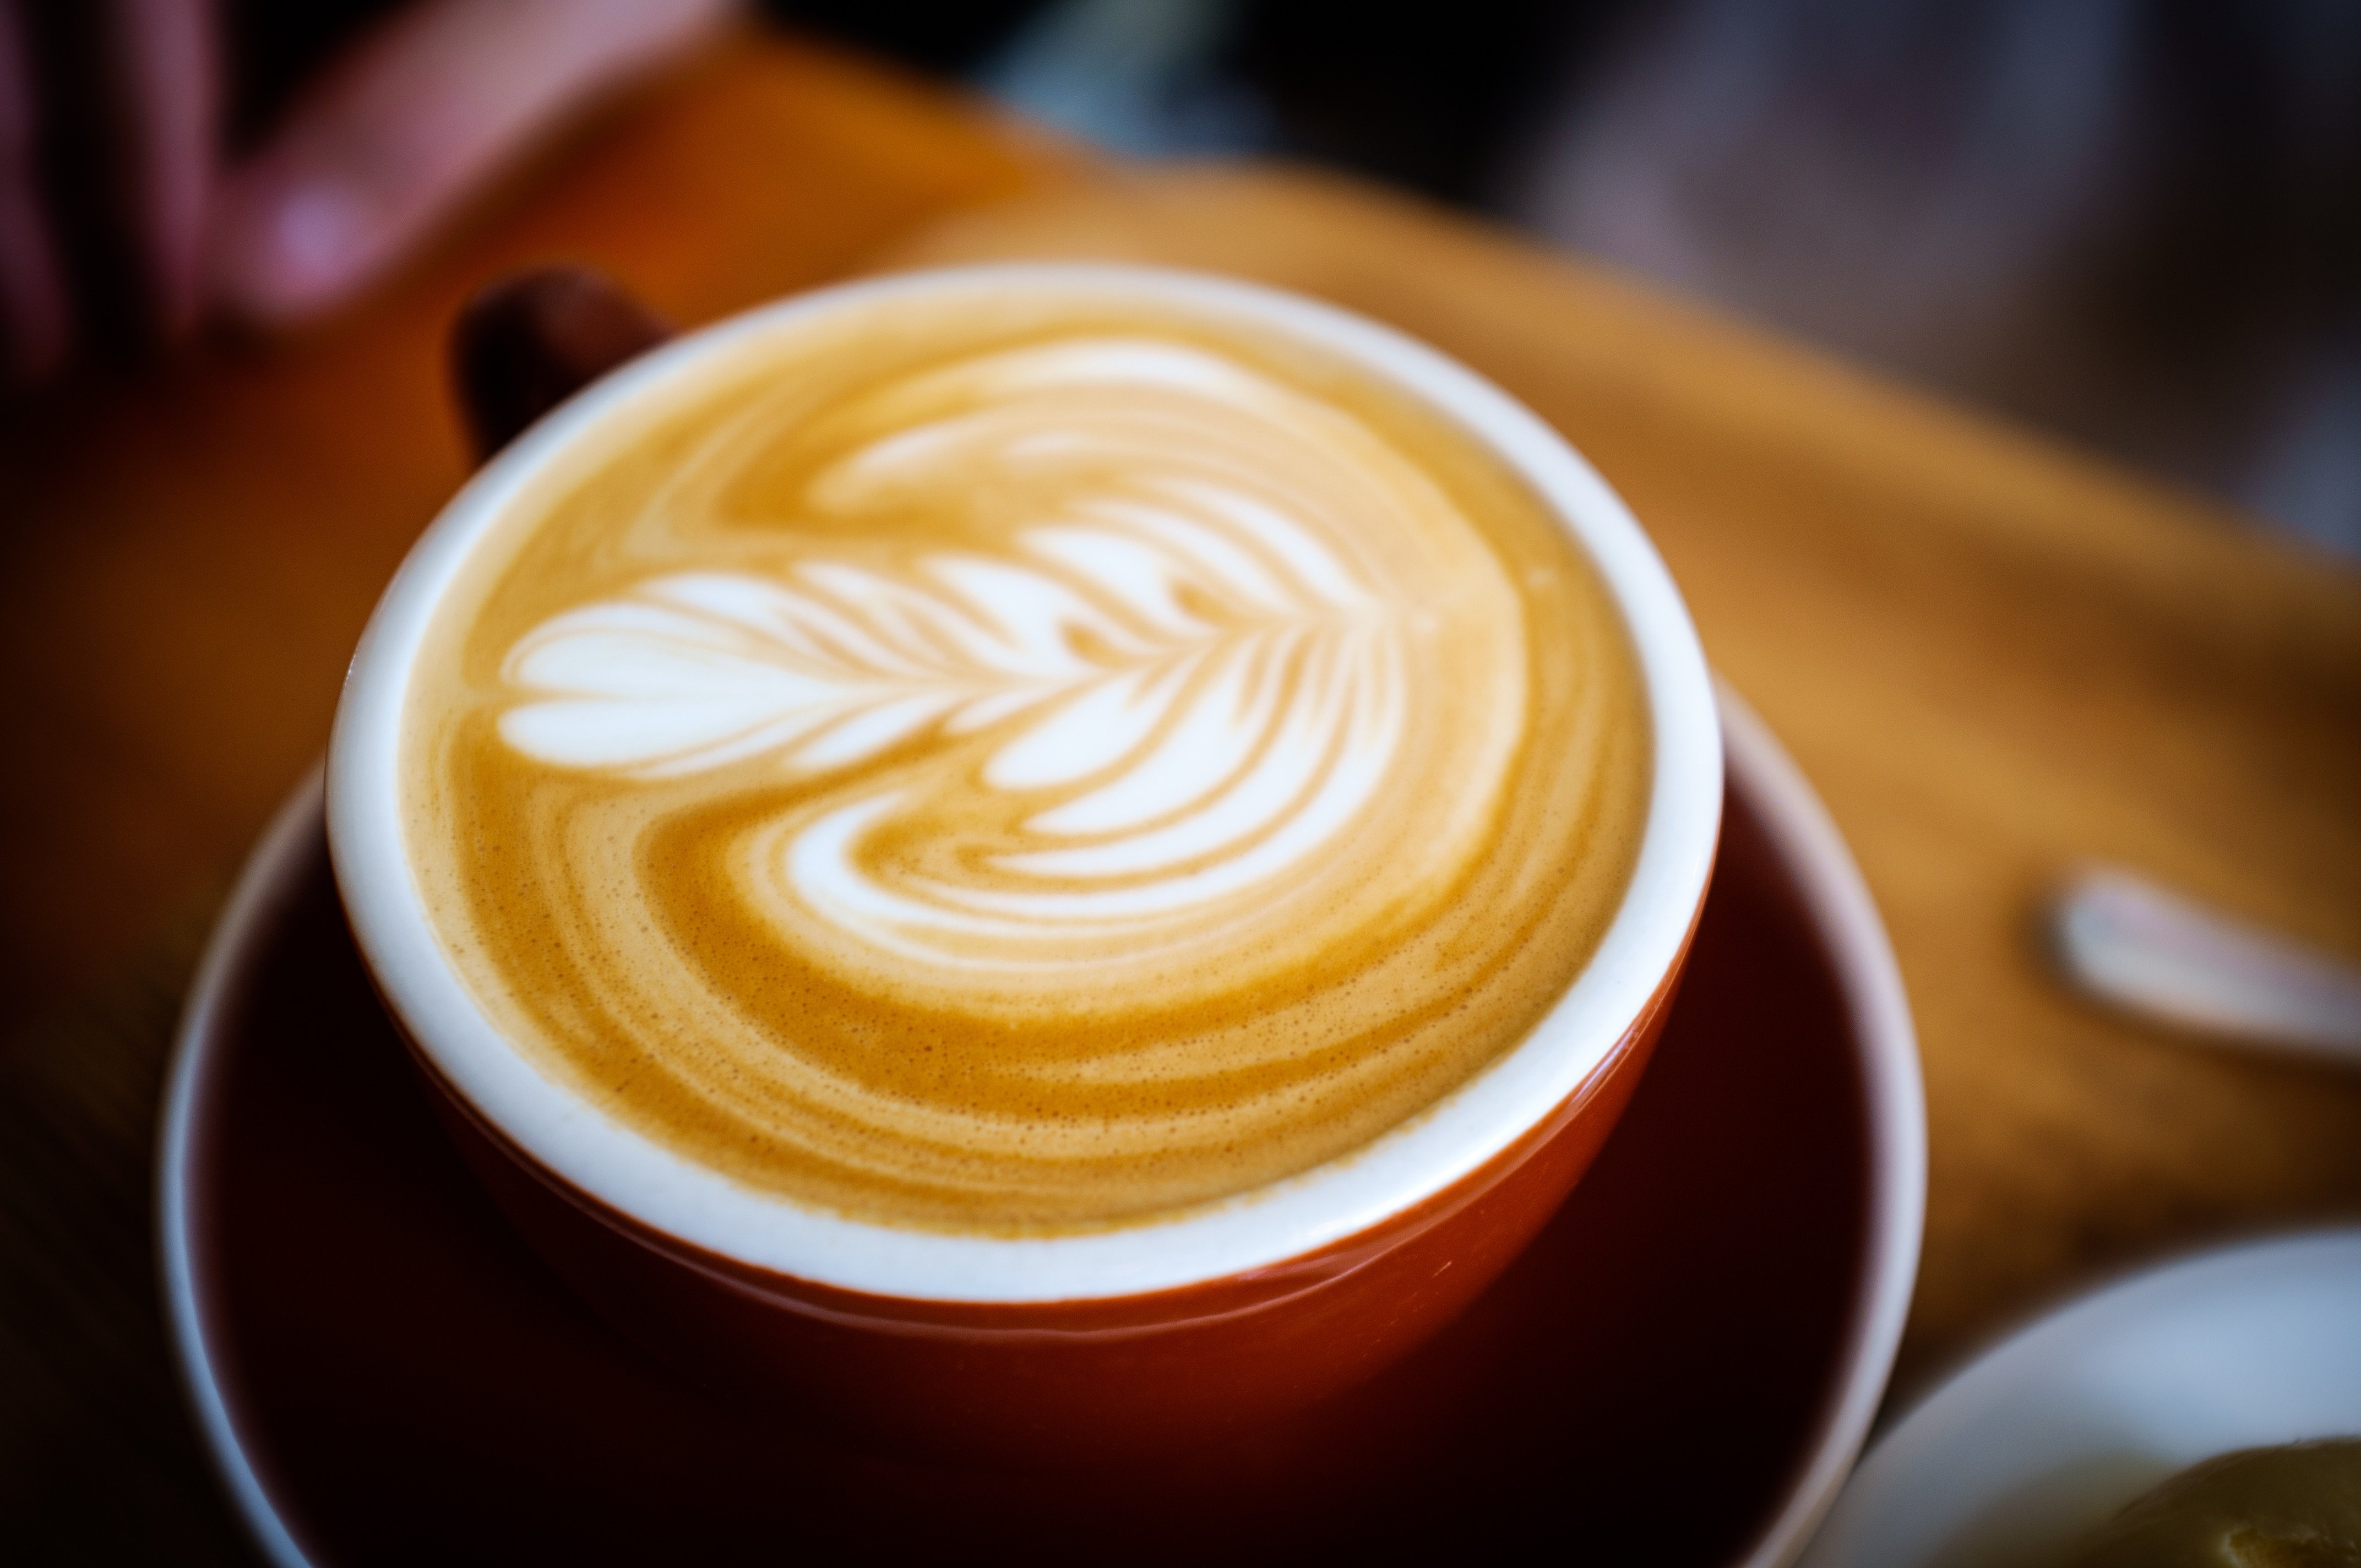 a cappuccino with a milk flower like pattern, beauty and taste for breakfast